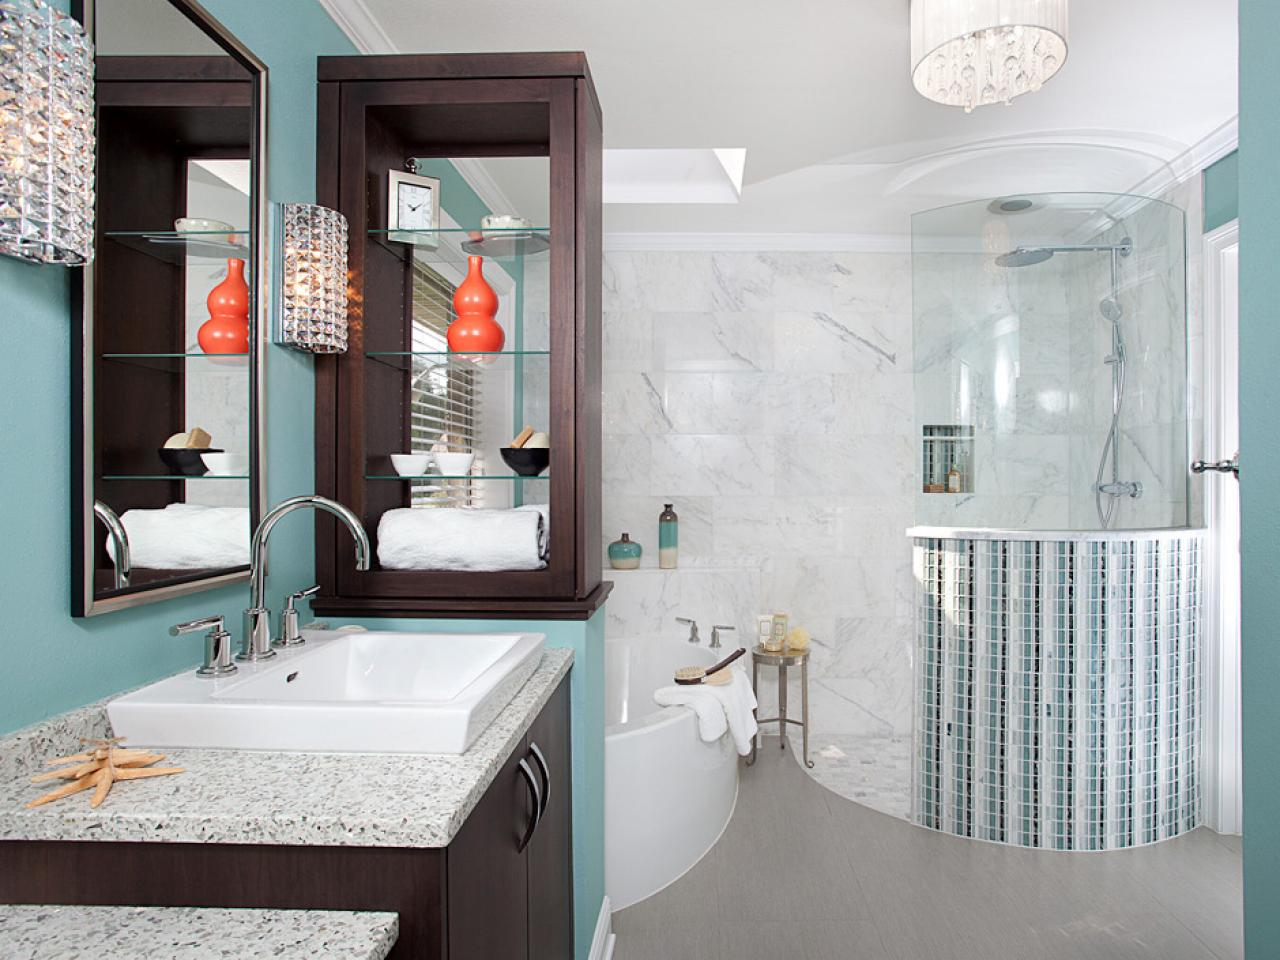 Bathroom decorating tips ideas pictures from hgtv hgtv for Bathroom decor colors